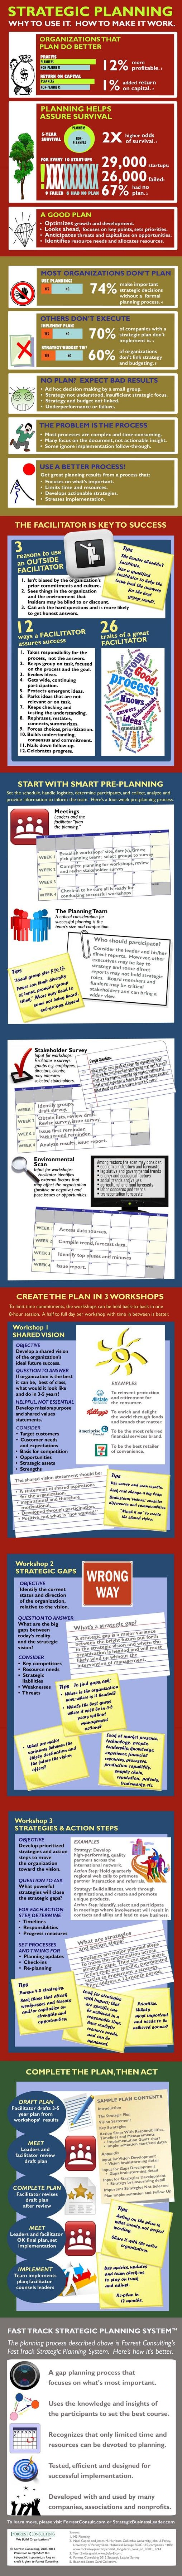 Best Teach  Strategic Planning Images On